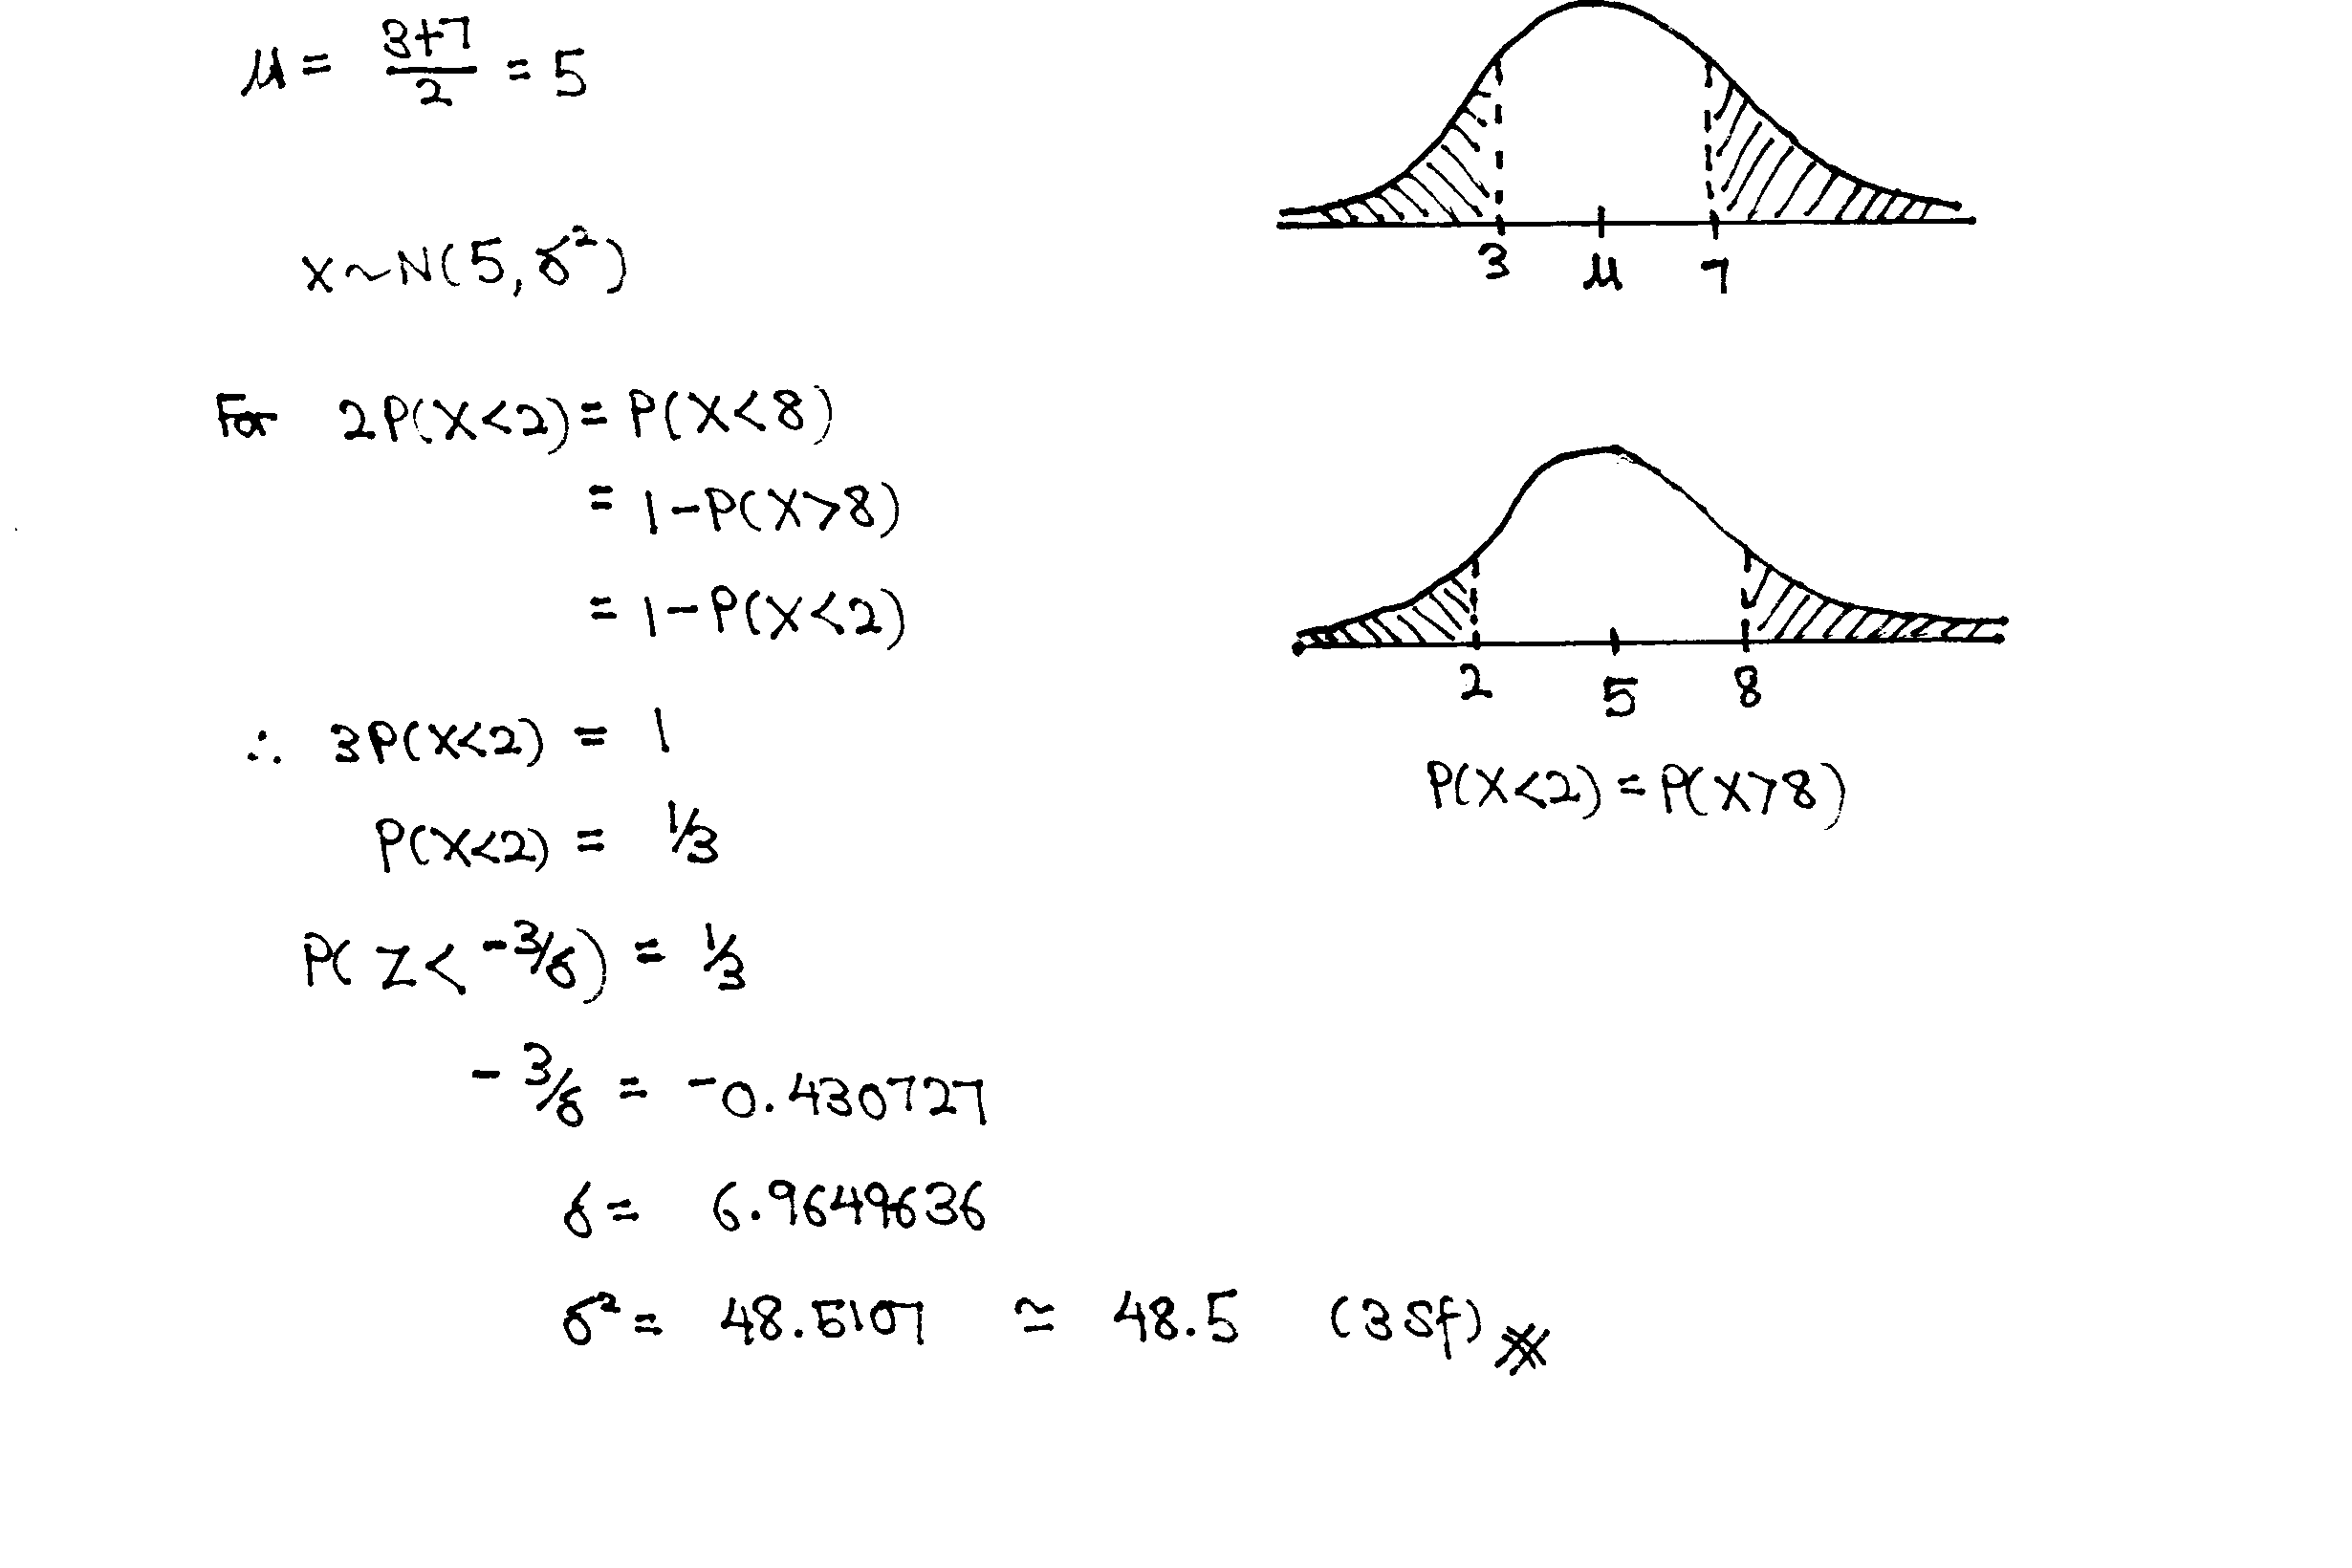 NYJC Normal Distribution Tutorial Q7 Solution A level JC H2 Math tuition